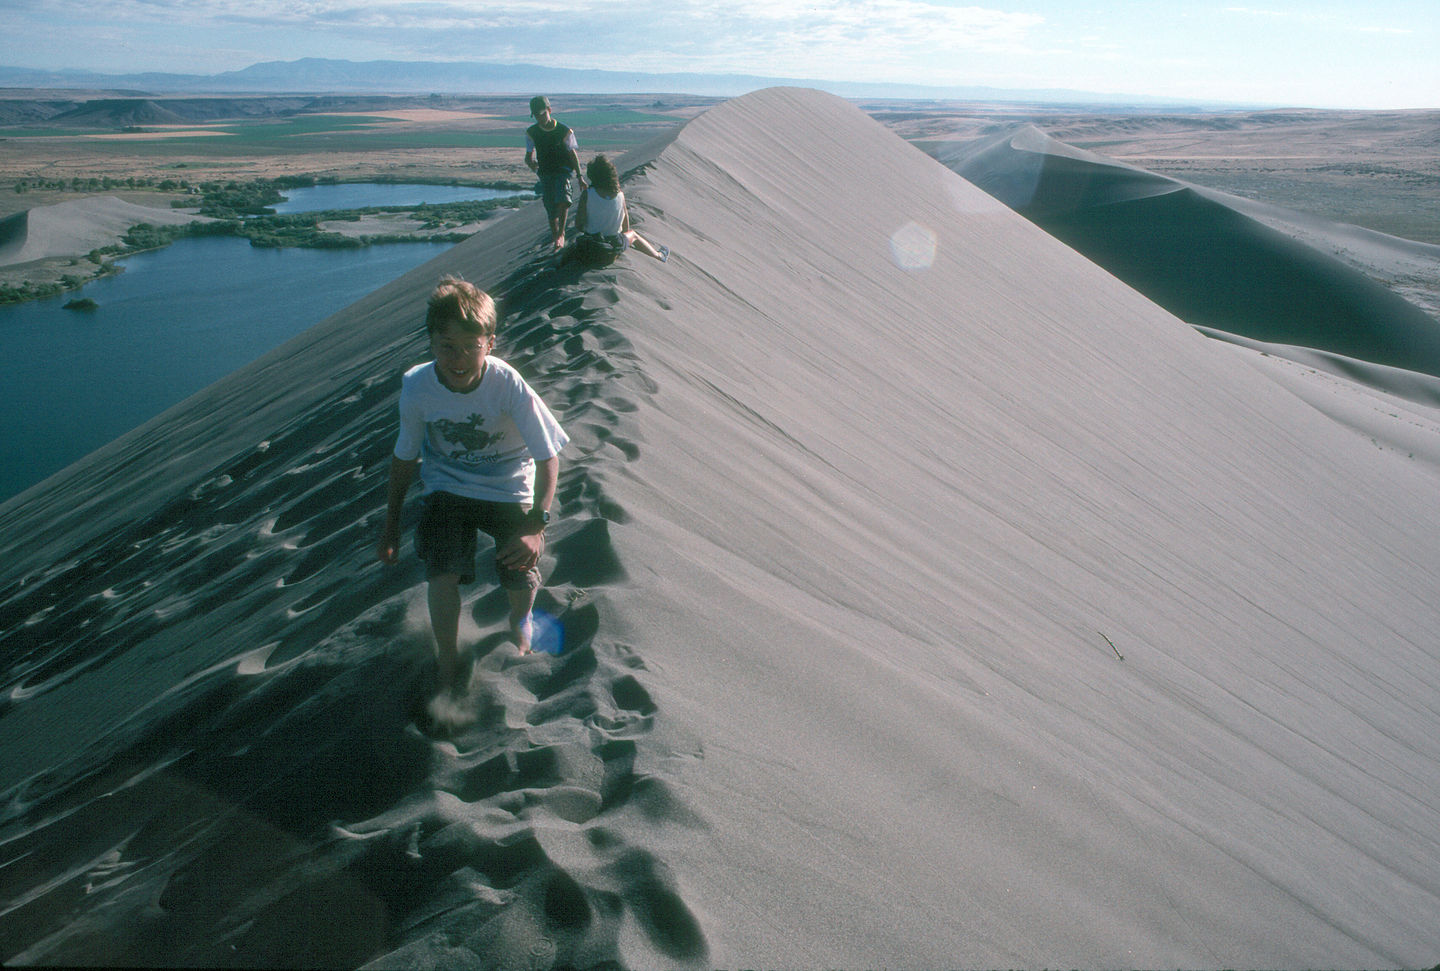 Lolo and boys on the knife edge of the dunes